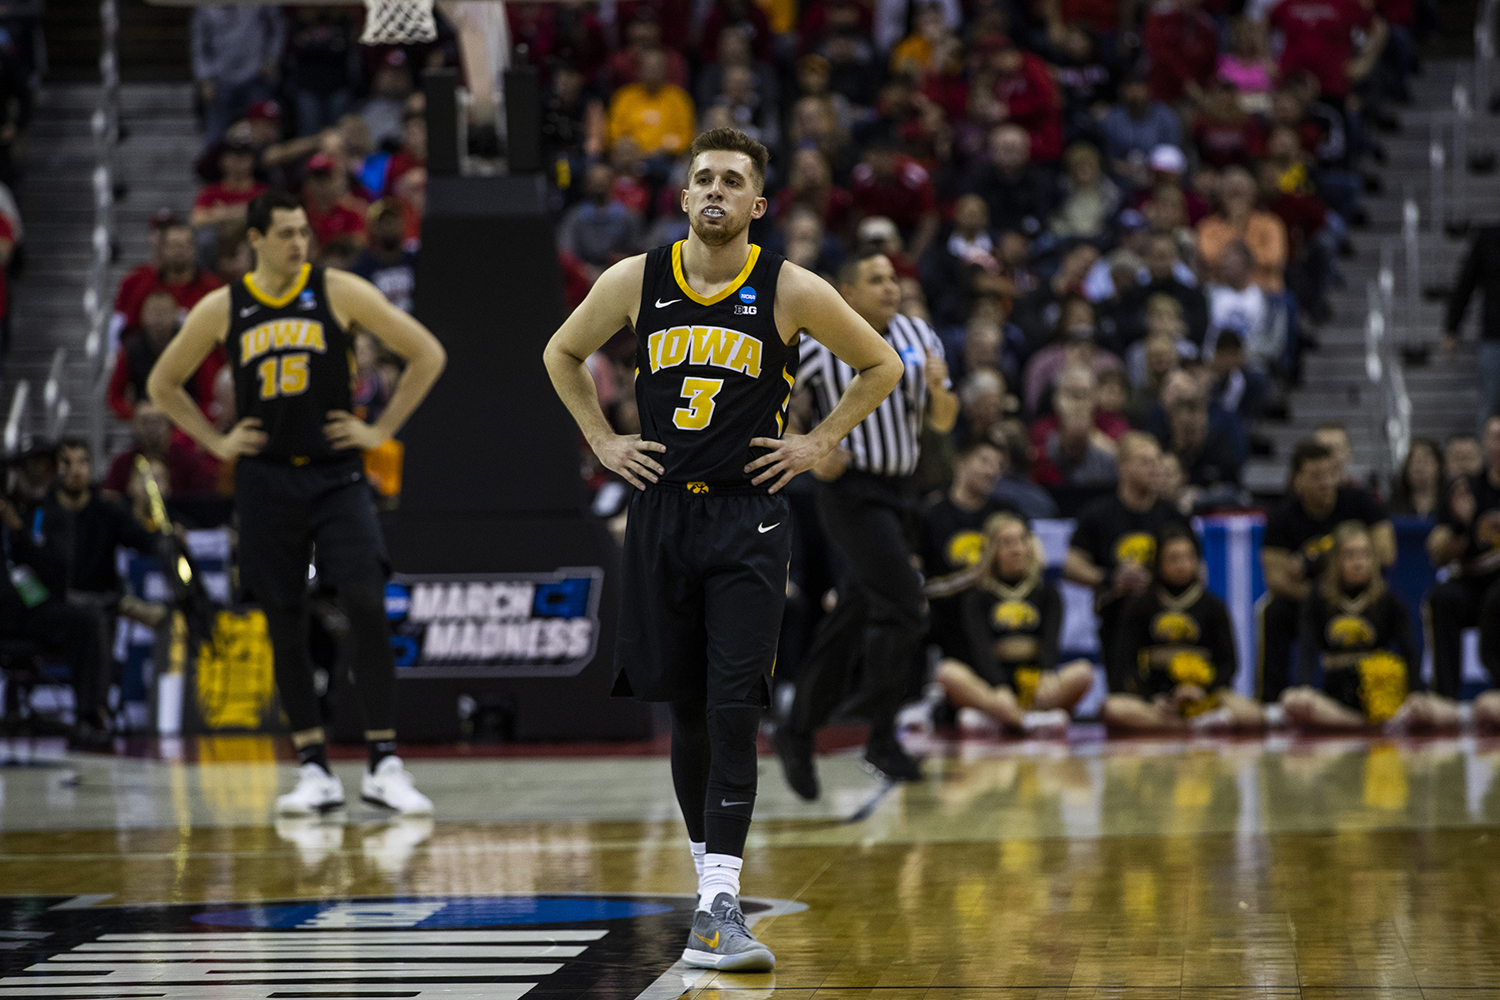 Iowa guard Jordan Bohannon waits for the game to resume during the NCAA game against Cincinnati at Nationwide Arena on Friday, March 22, 2019. The Hawkeyes defeated the Bearcats 79-72.